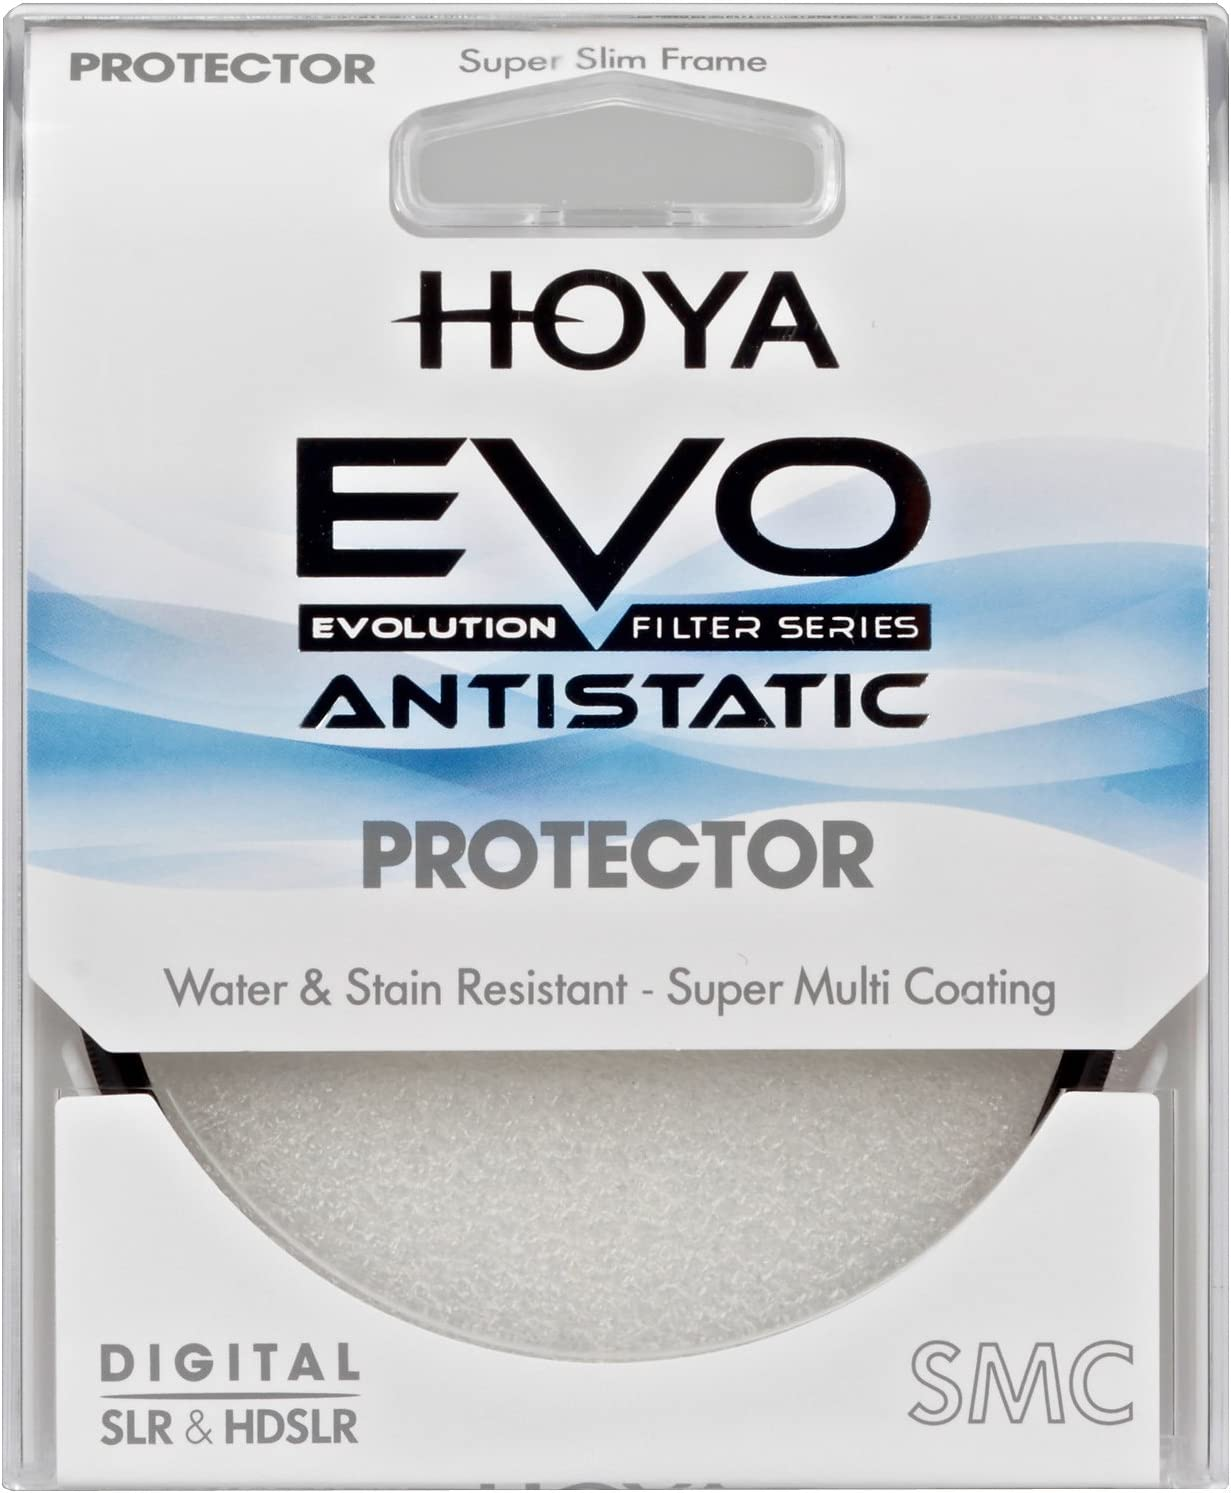 Hoya EVO ANTISTATIC 55mm Protector Super Multi-Coated Slim Frame Water /& Stain Resistant Filter XEVA-55PROTEC